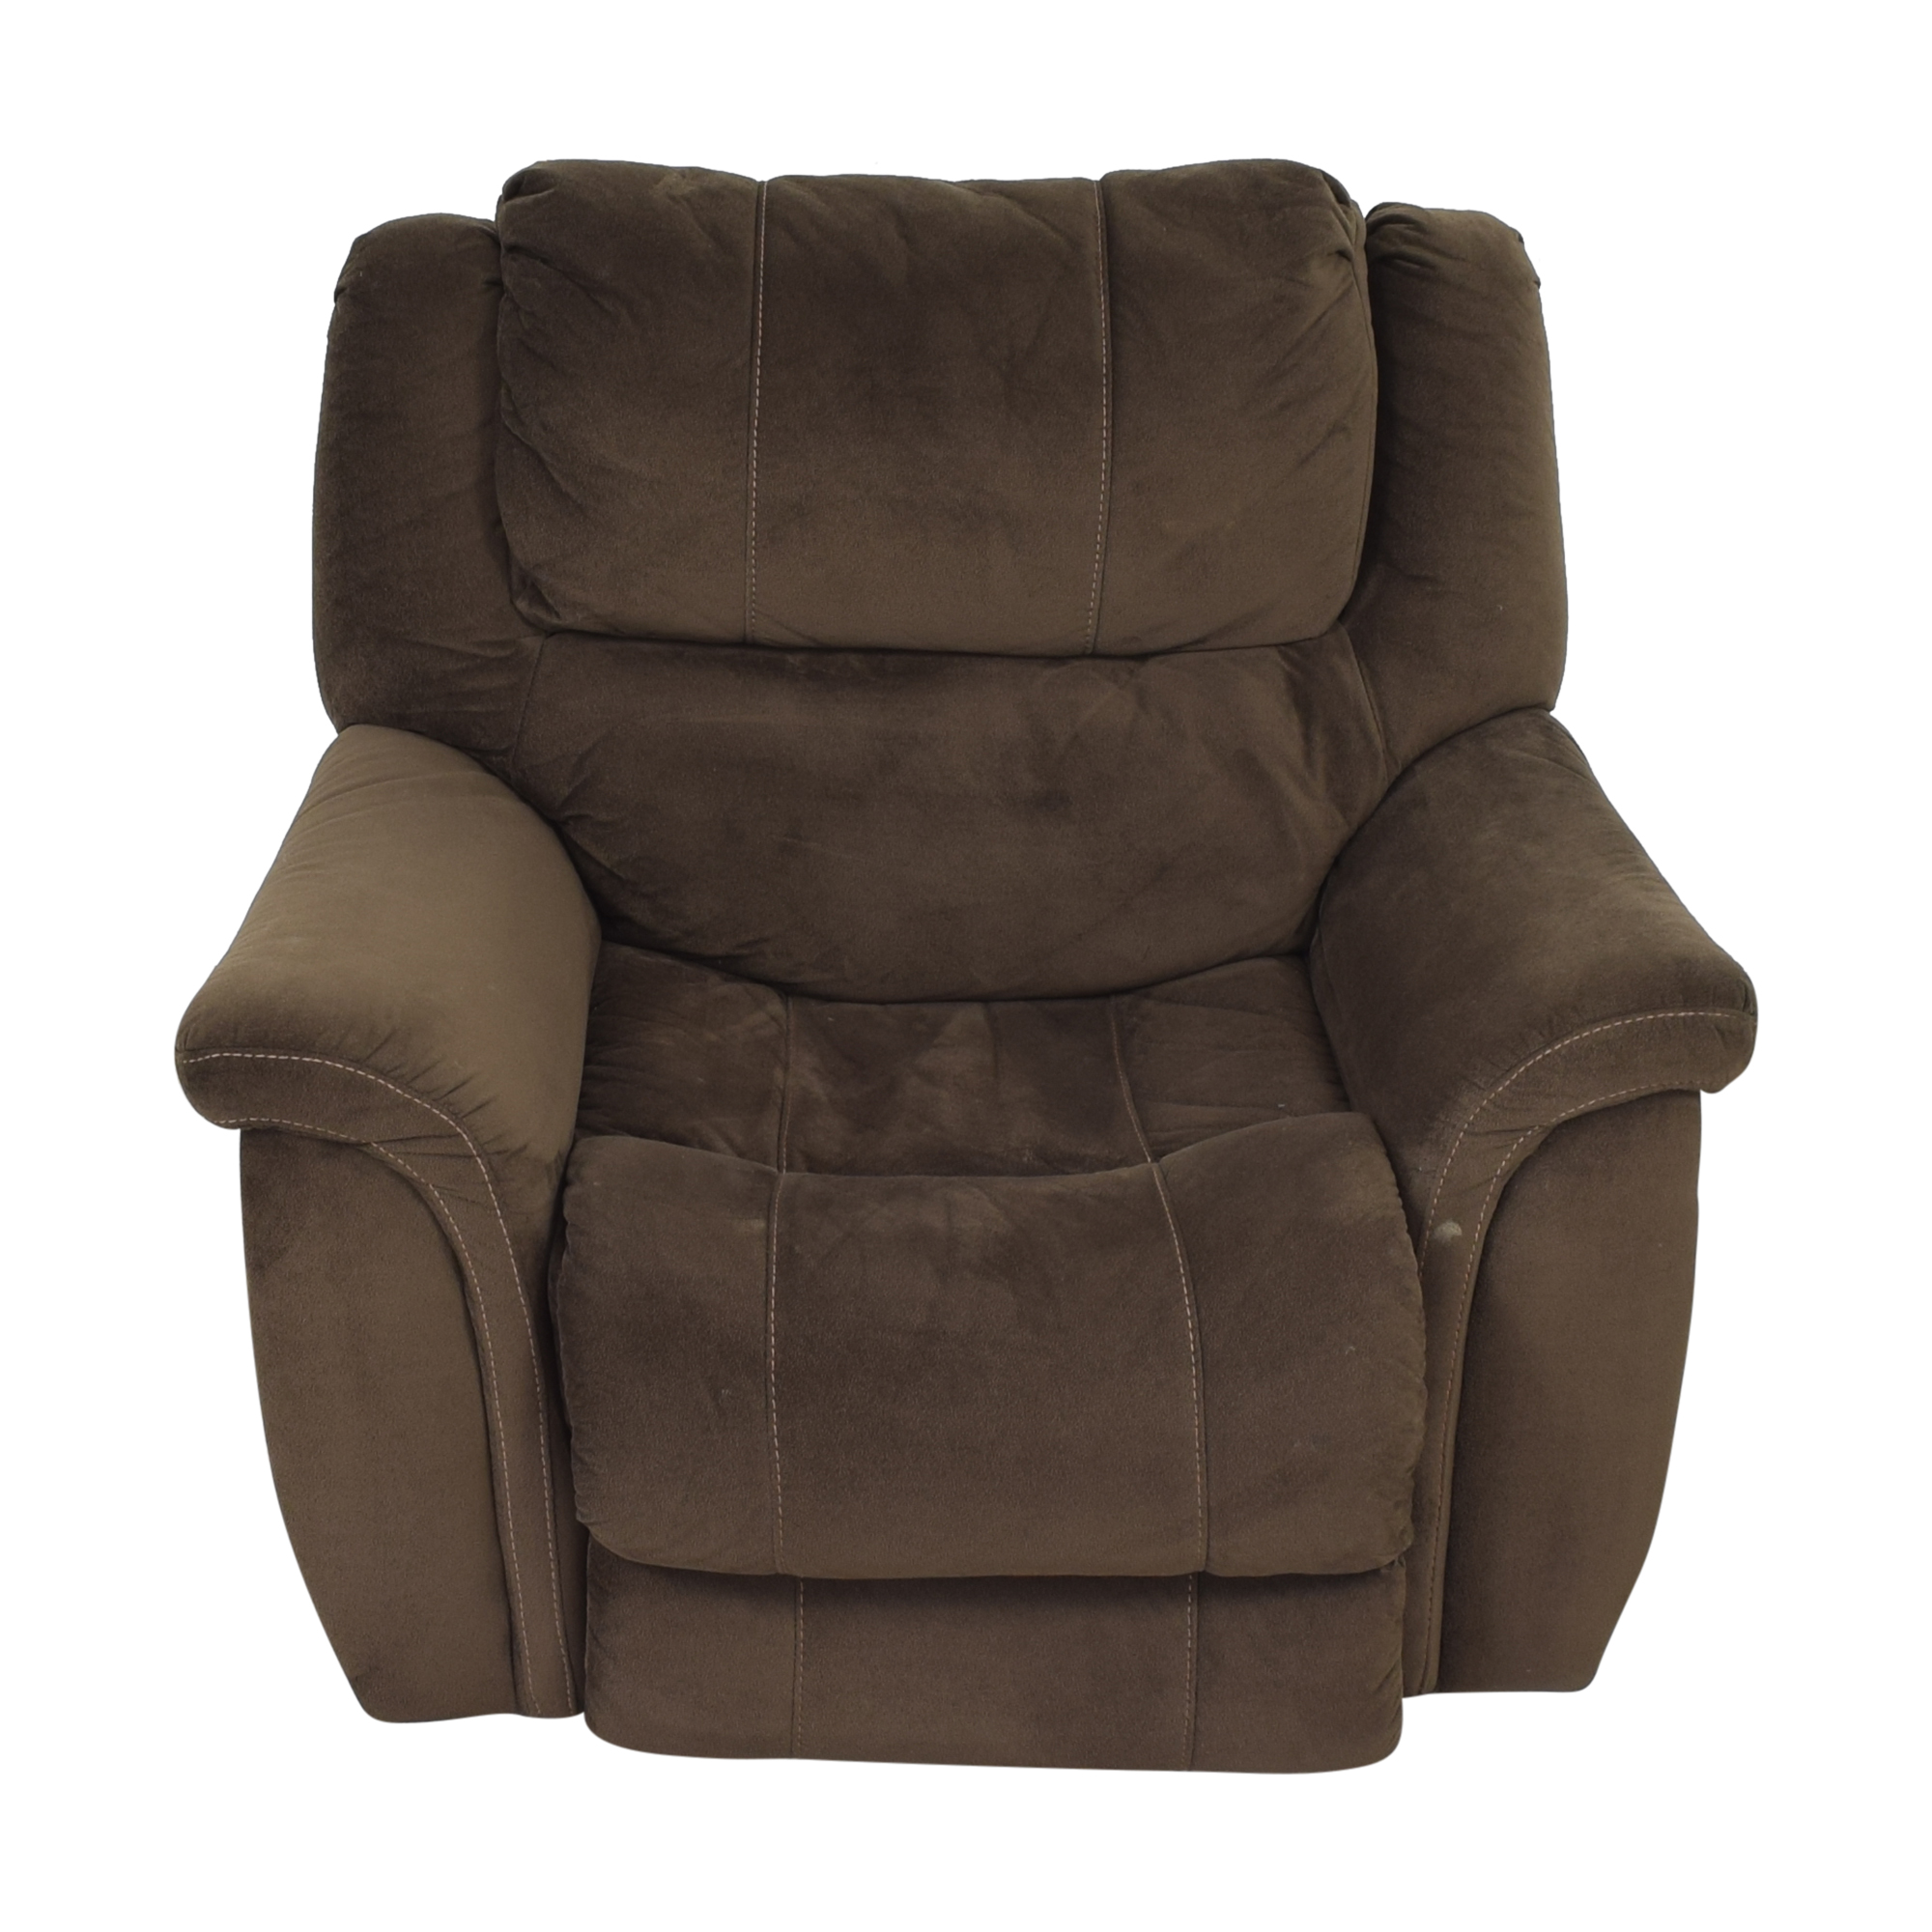 Raymour & Flanigan Power Recliner / Chairs